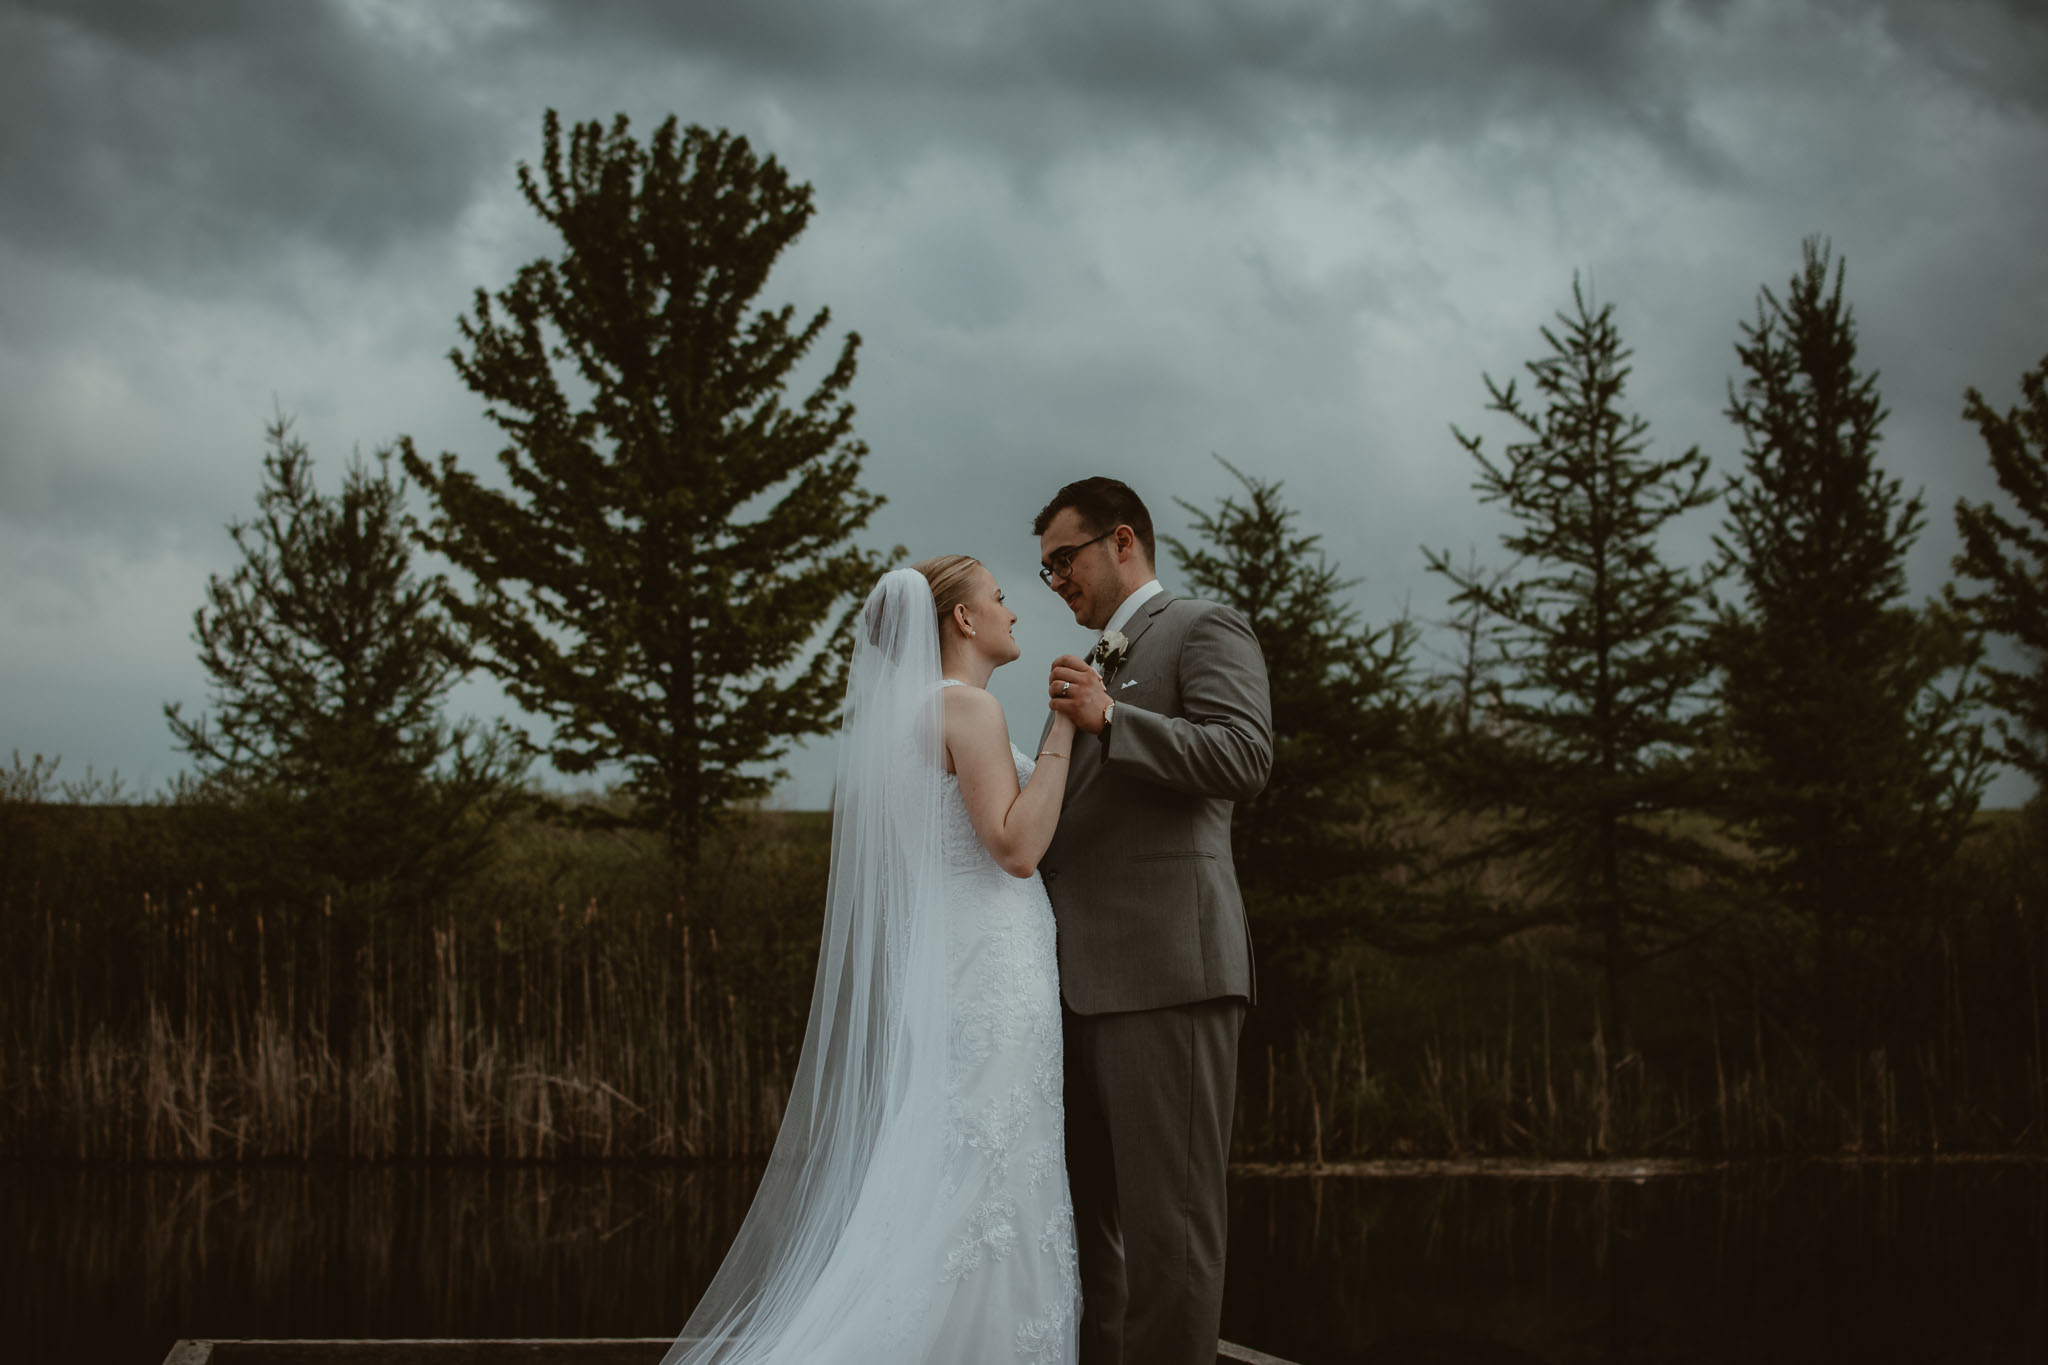 Bride and groom dancing on the dock of a pond with stormy clouds in the background